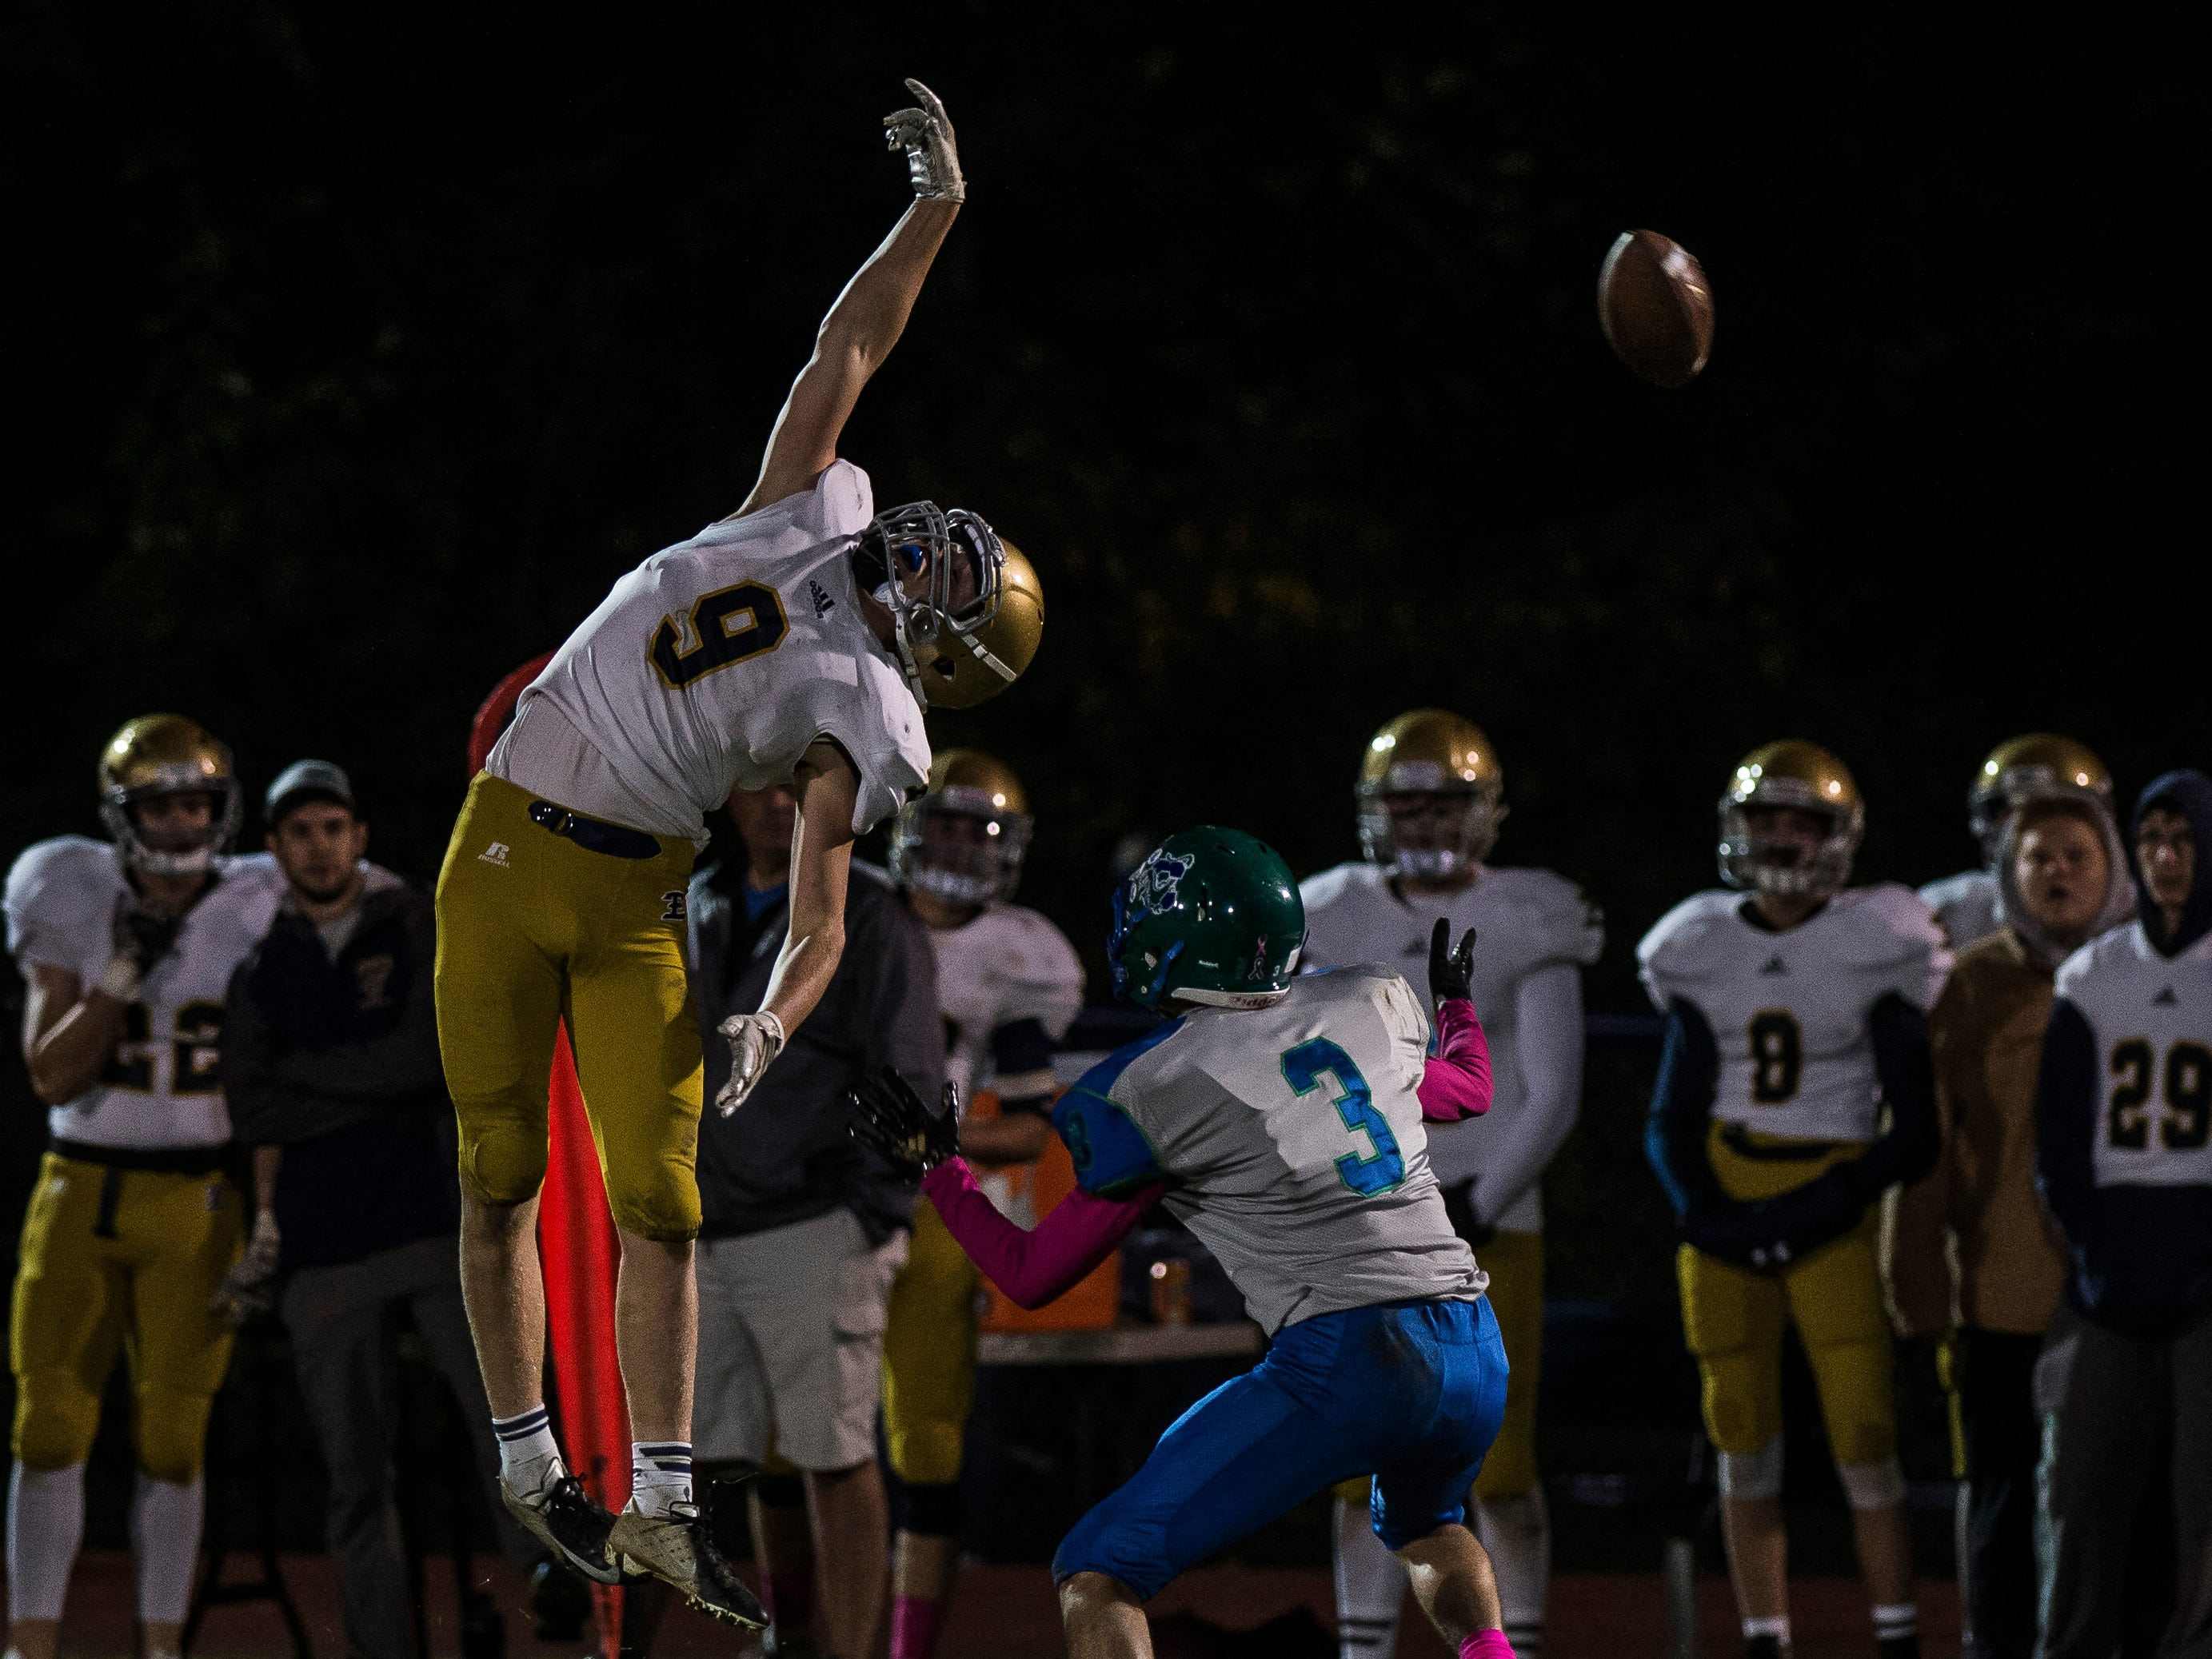 Essex #9 Chris Davis reaches for a high pass during their football game against Colchester Friday night, Oct. 5, 2018, at Colchester High School. The Lakers won, 28-7.